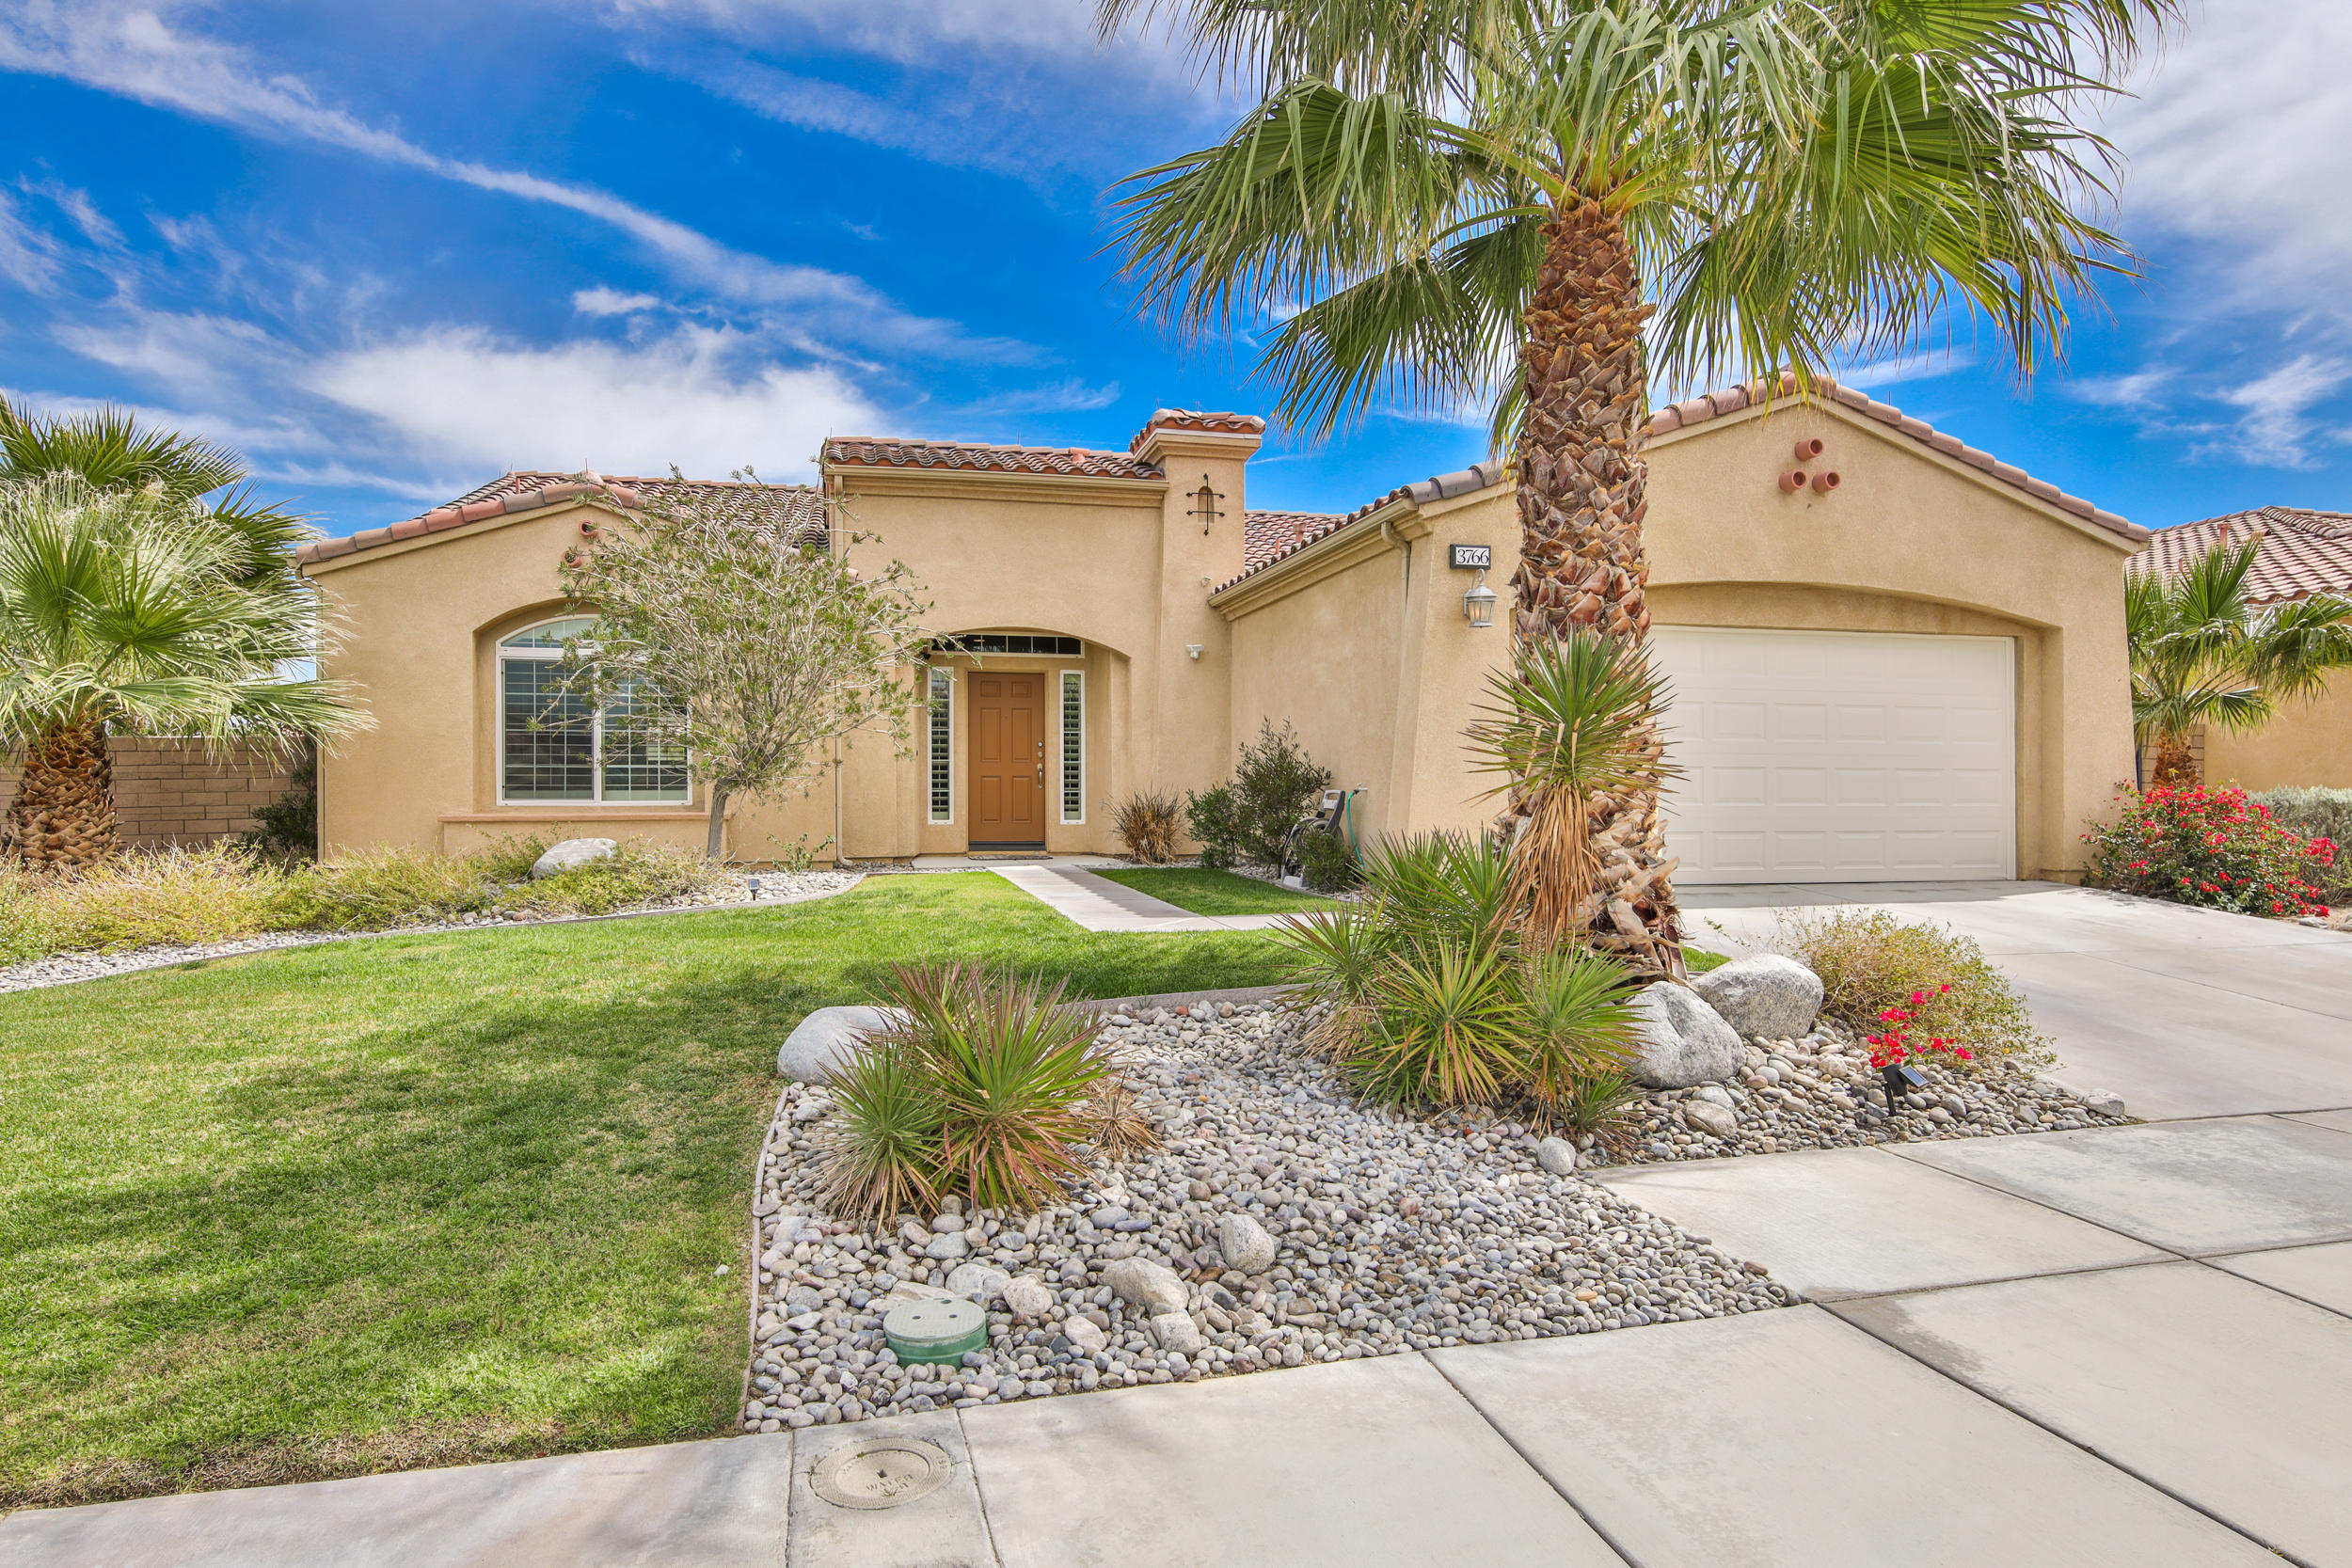 Photo of 3766 Cassia Trail, Palm Springs, CA 92262